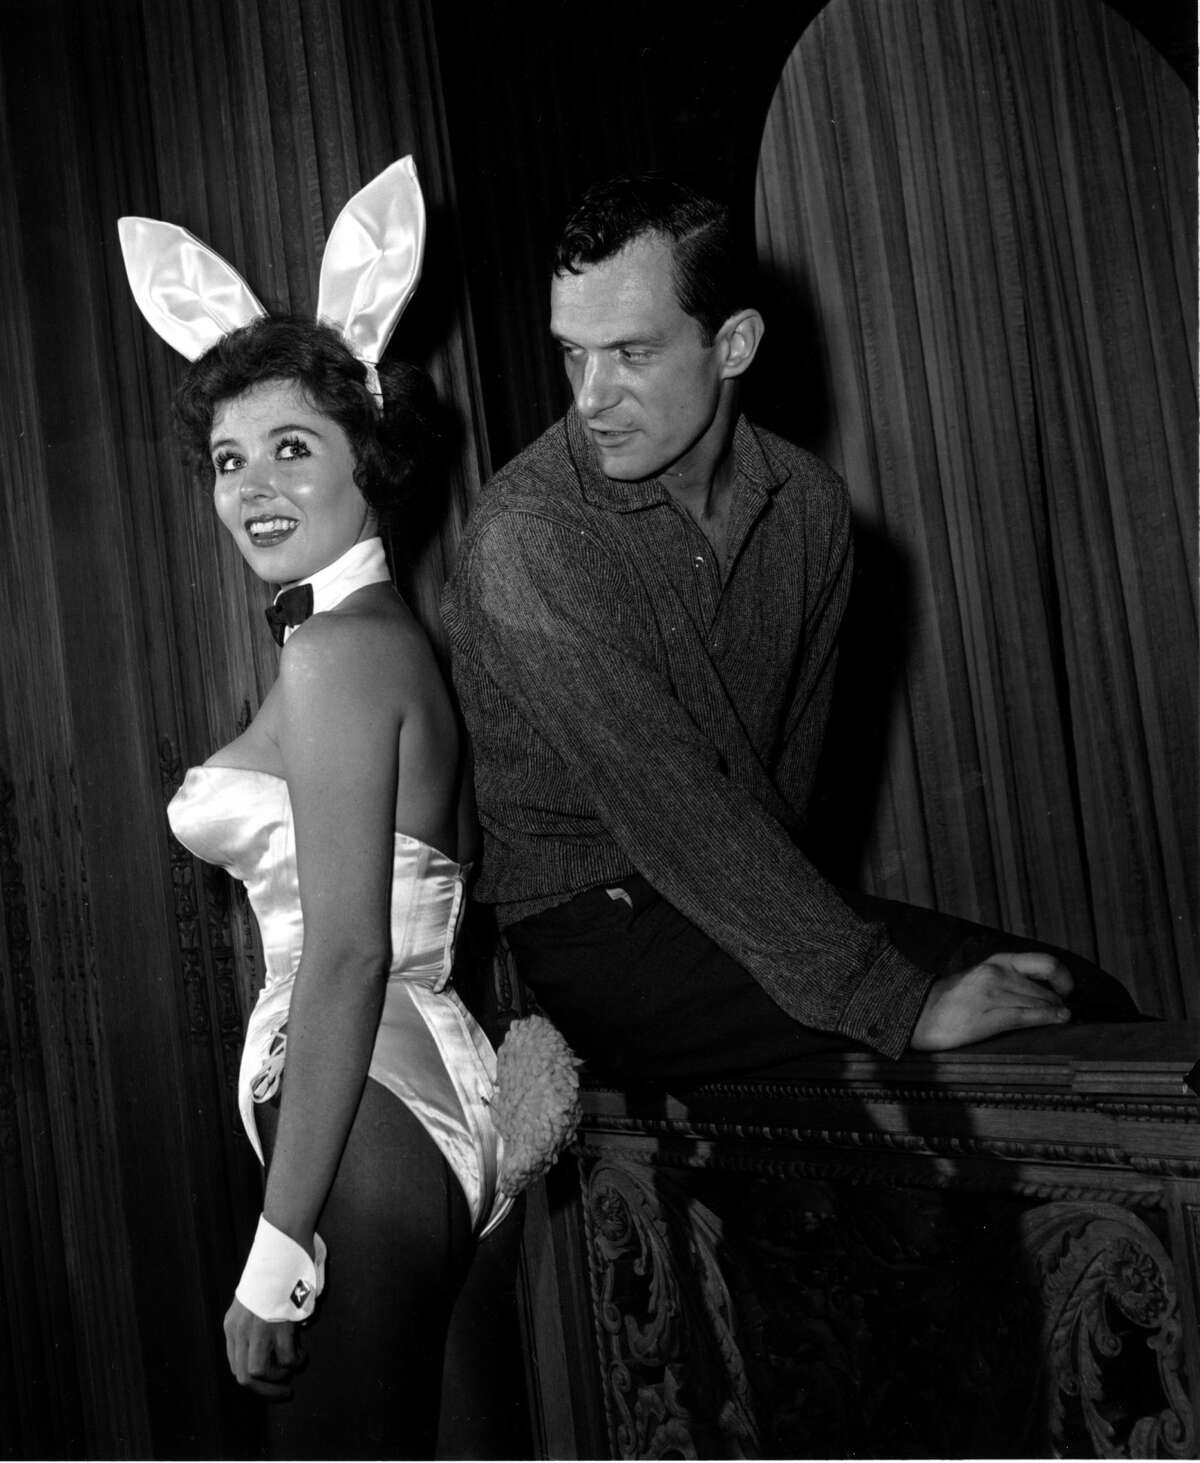 Playboy magazine publisher Hugh Hefner poses with